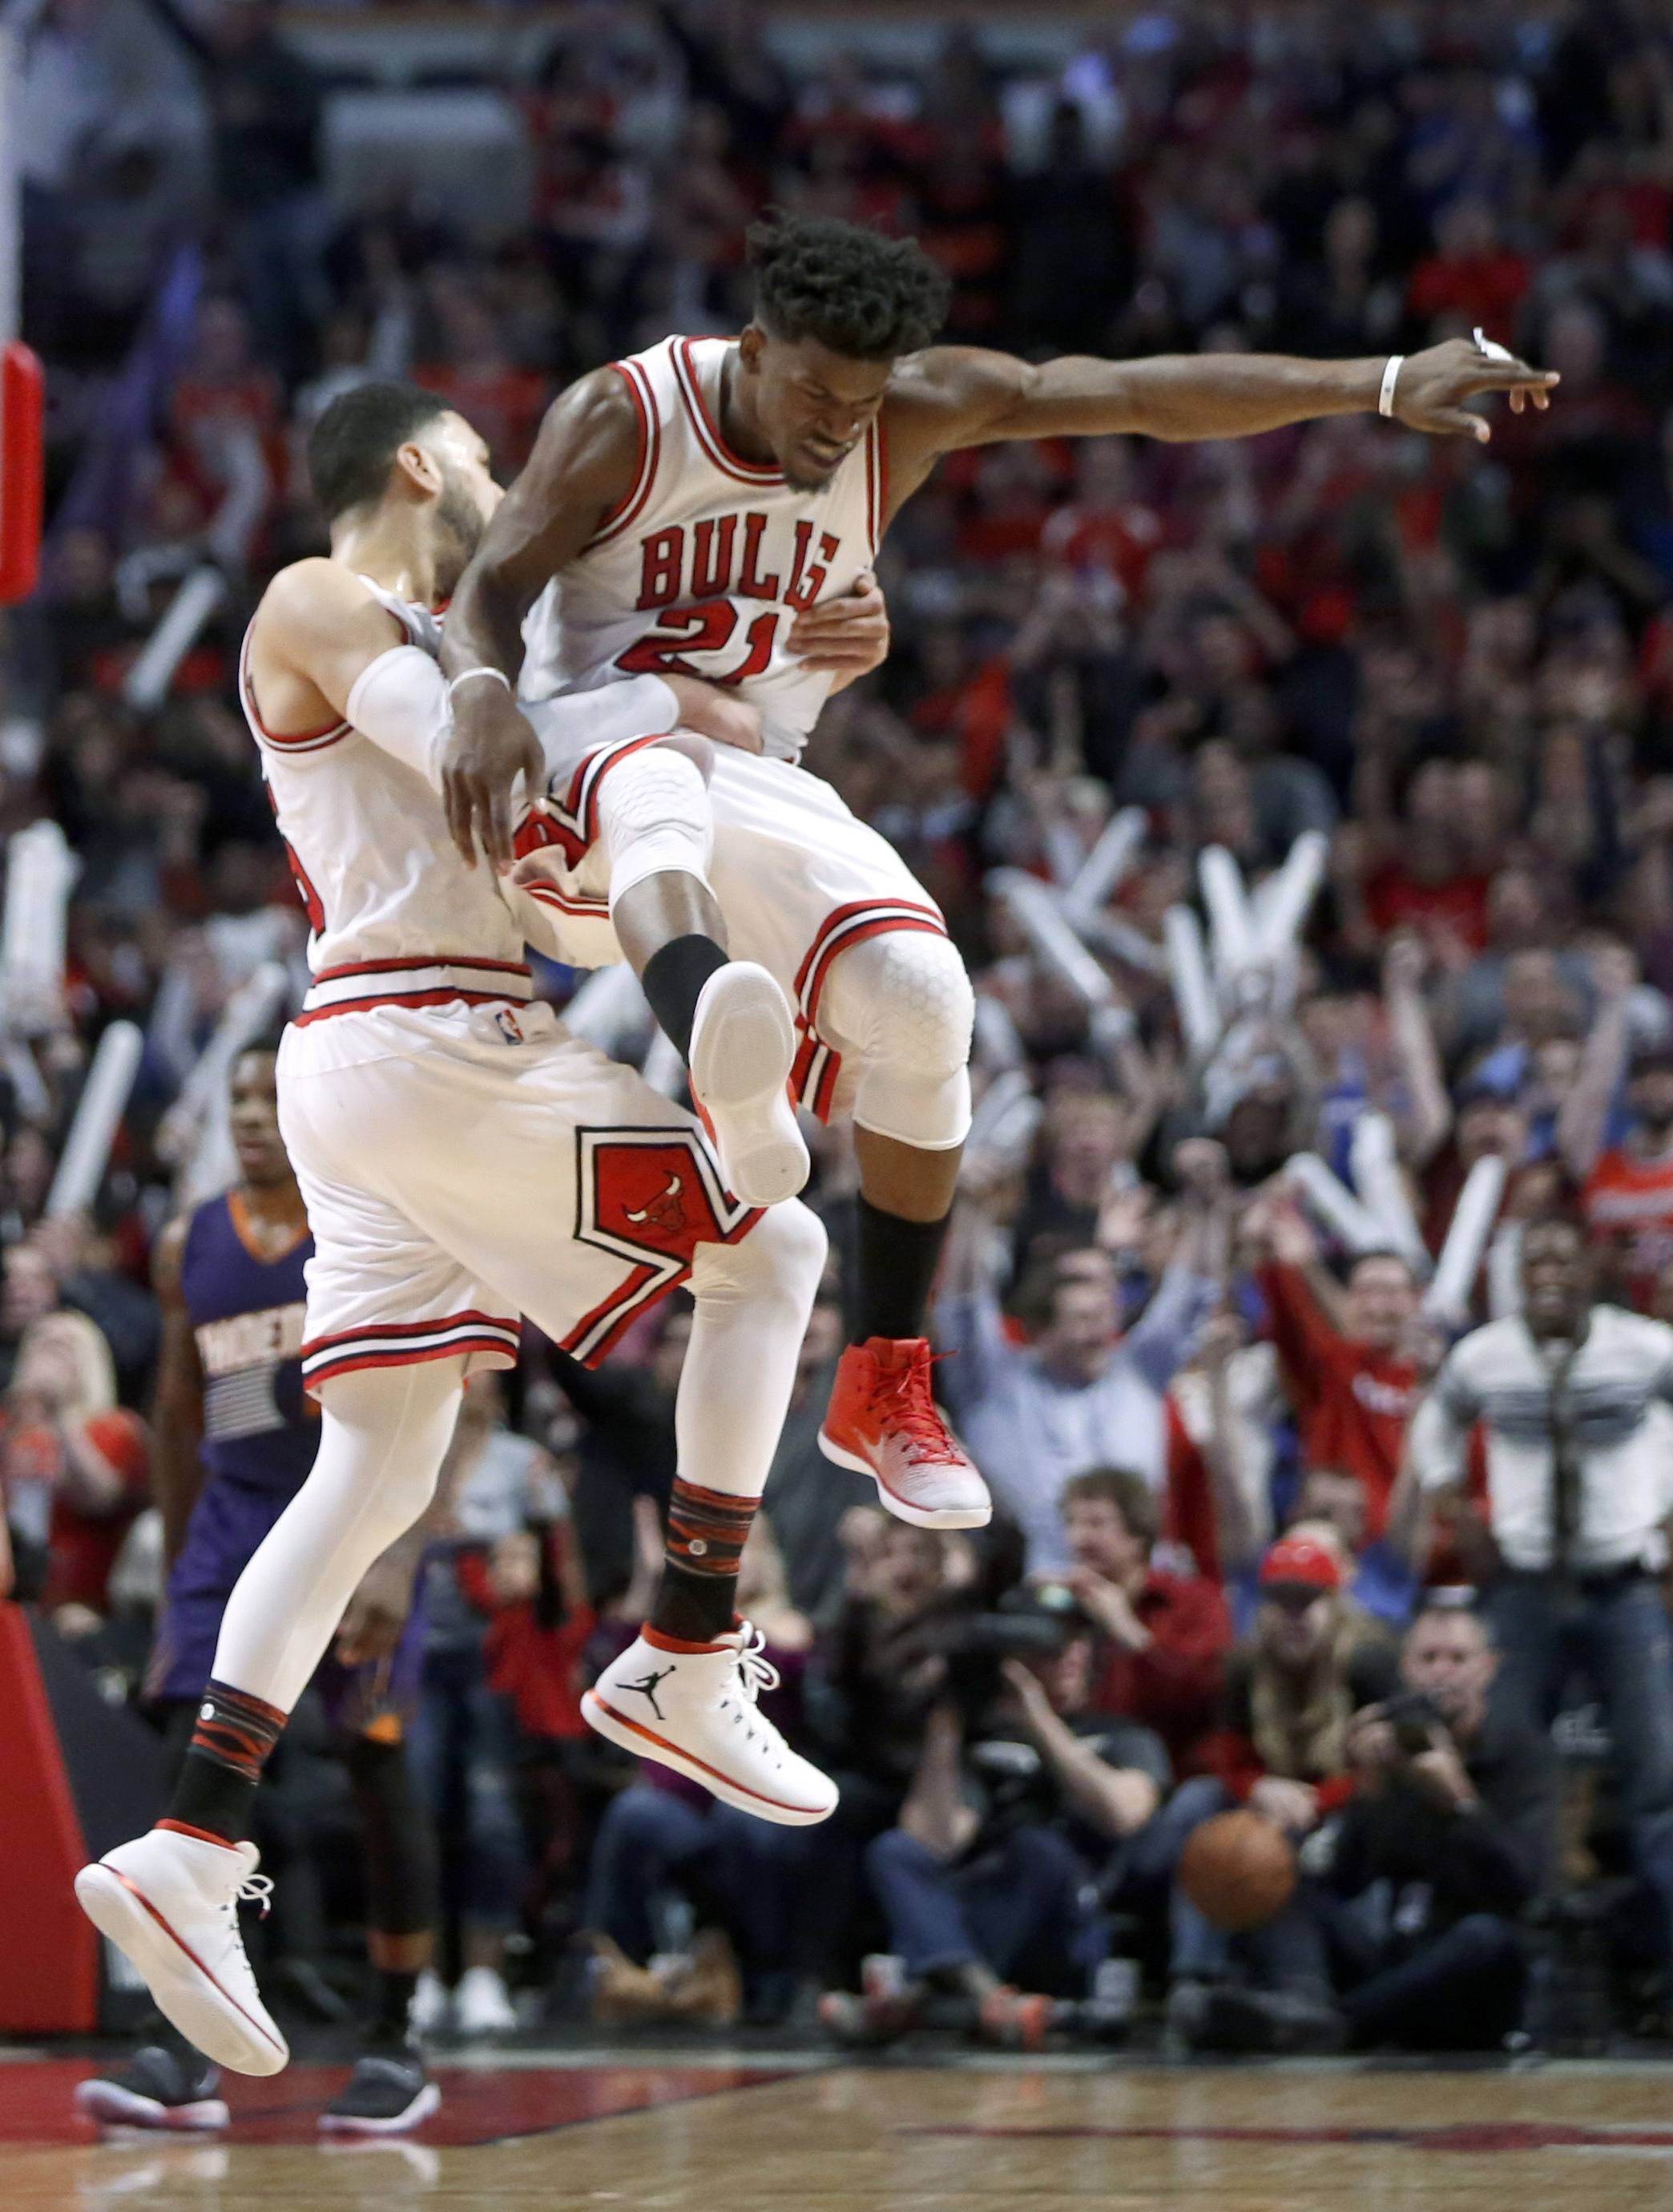 Chicago Bulls' Jimmy Butler (21) celebrates his game-tying shot with Denzel Valentine, late in the second half of the team's NBA basketball game against the Phoenix Suns on Friday, Feb. 24, 2017, in Chicago. The Bulls won in overtime, 128-121. (AP Photo/Charles Rex Arbogast)